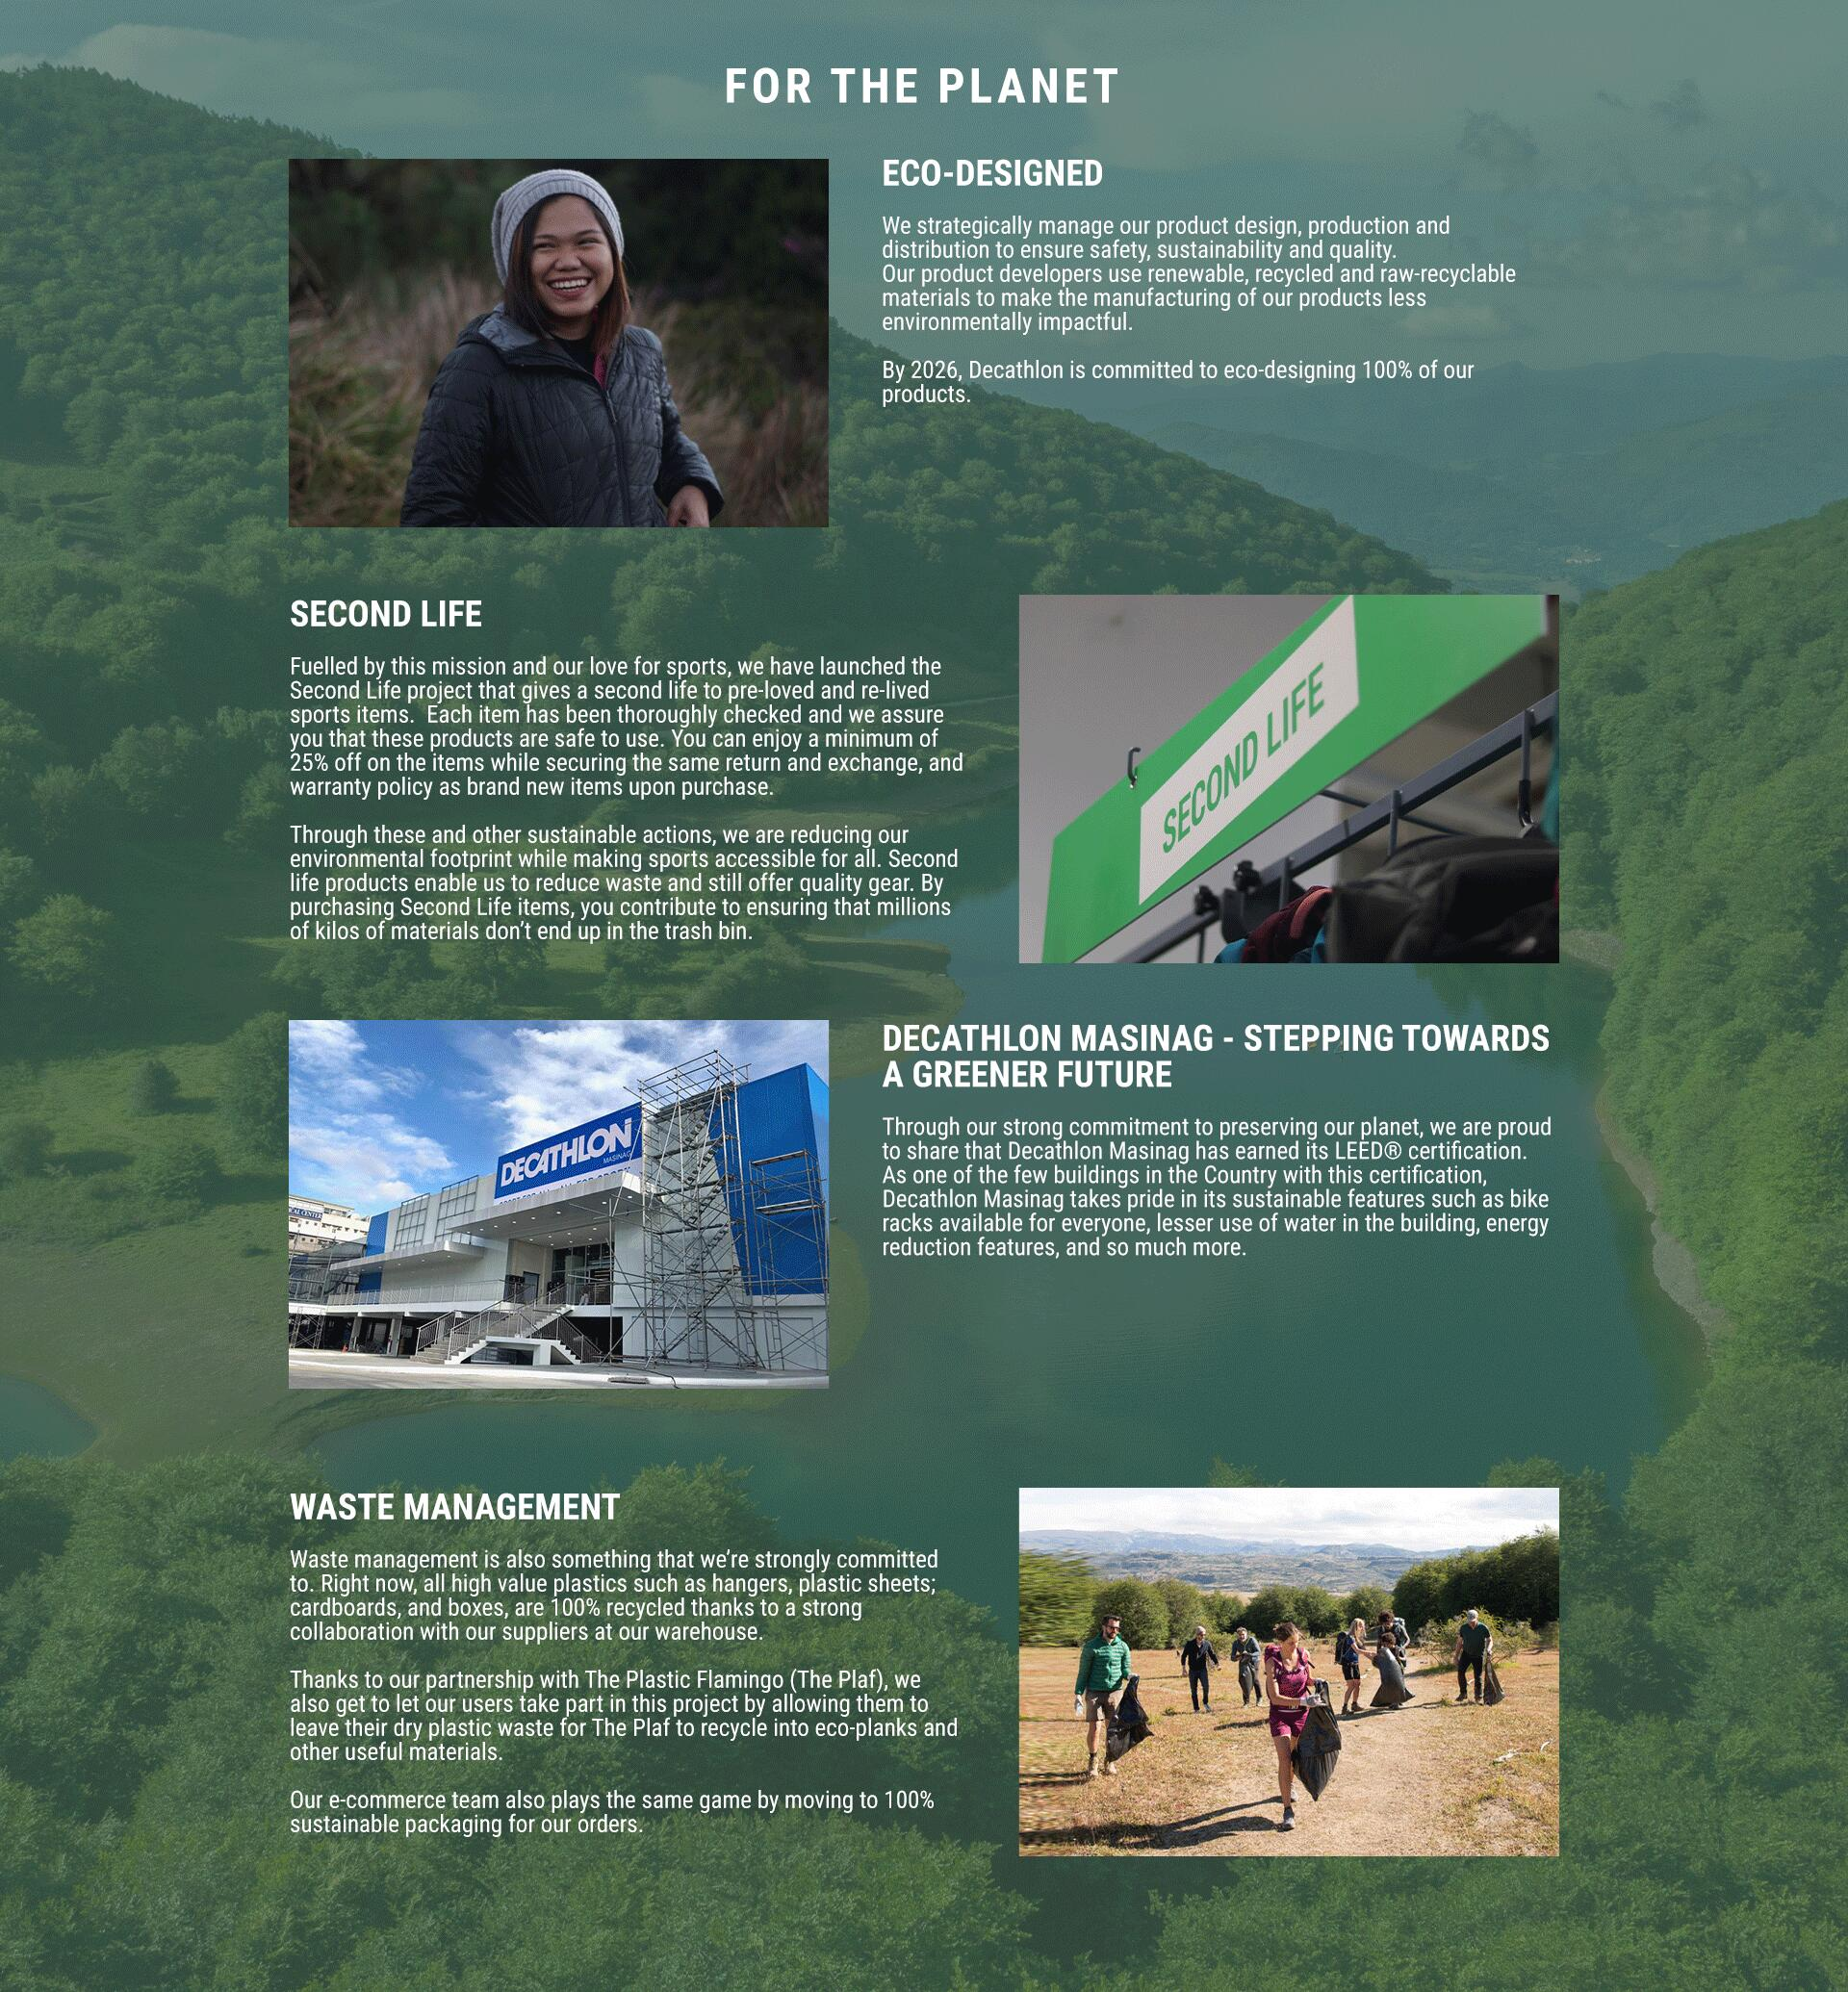 Decathlon Philippine Sustainability - For the Planet